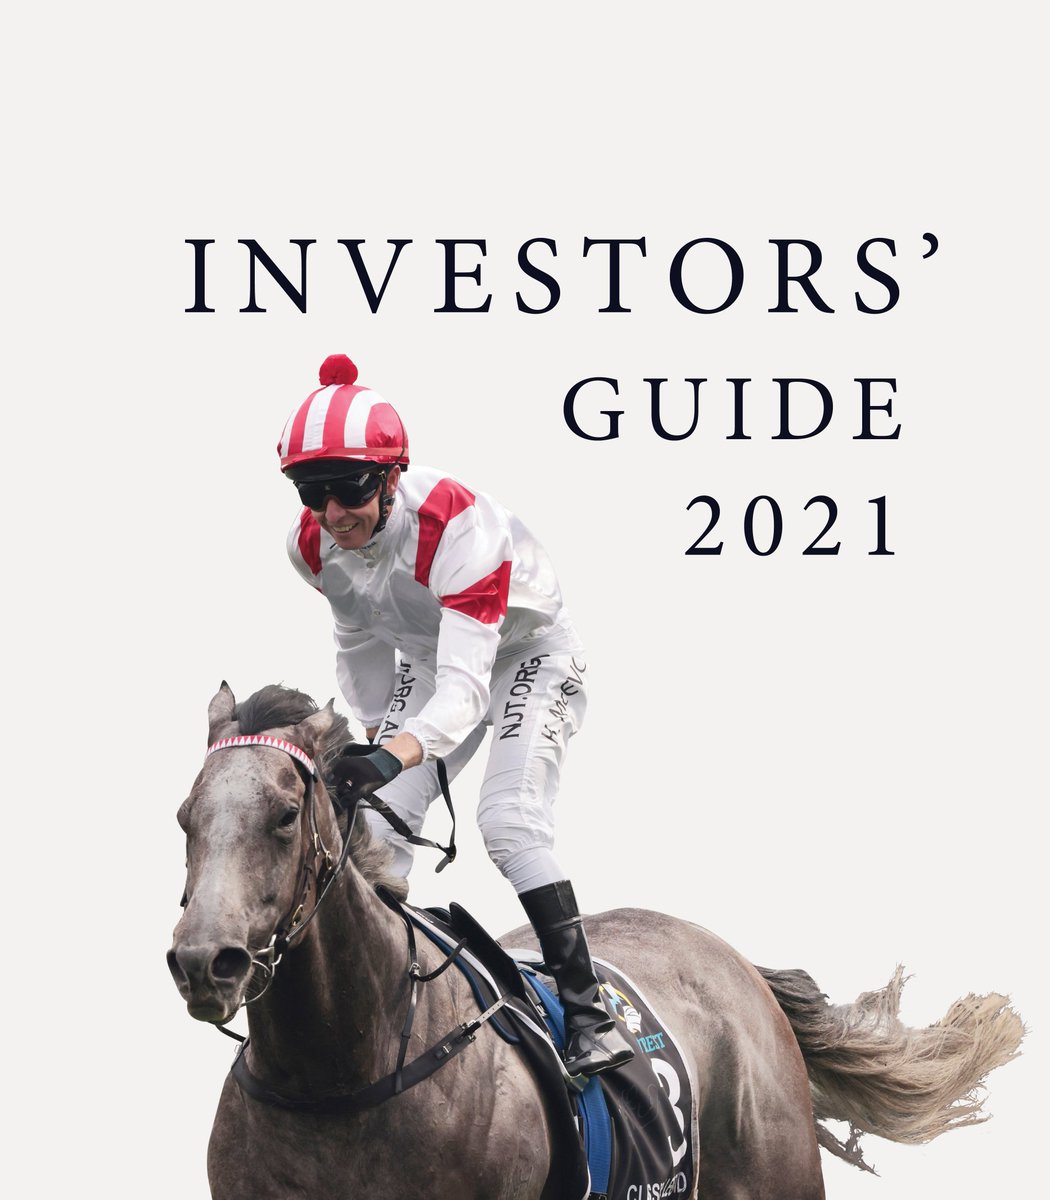 The facts are very compelling. This is terrific and should be widely used to assist those interested in breeding, trading and racing in Aus. https://t.co/jh1sGTQBeq